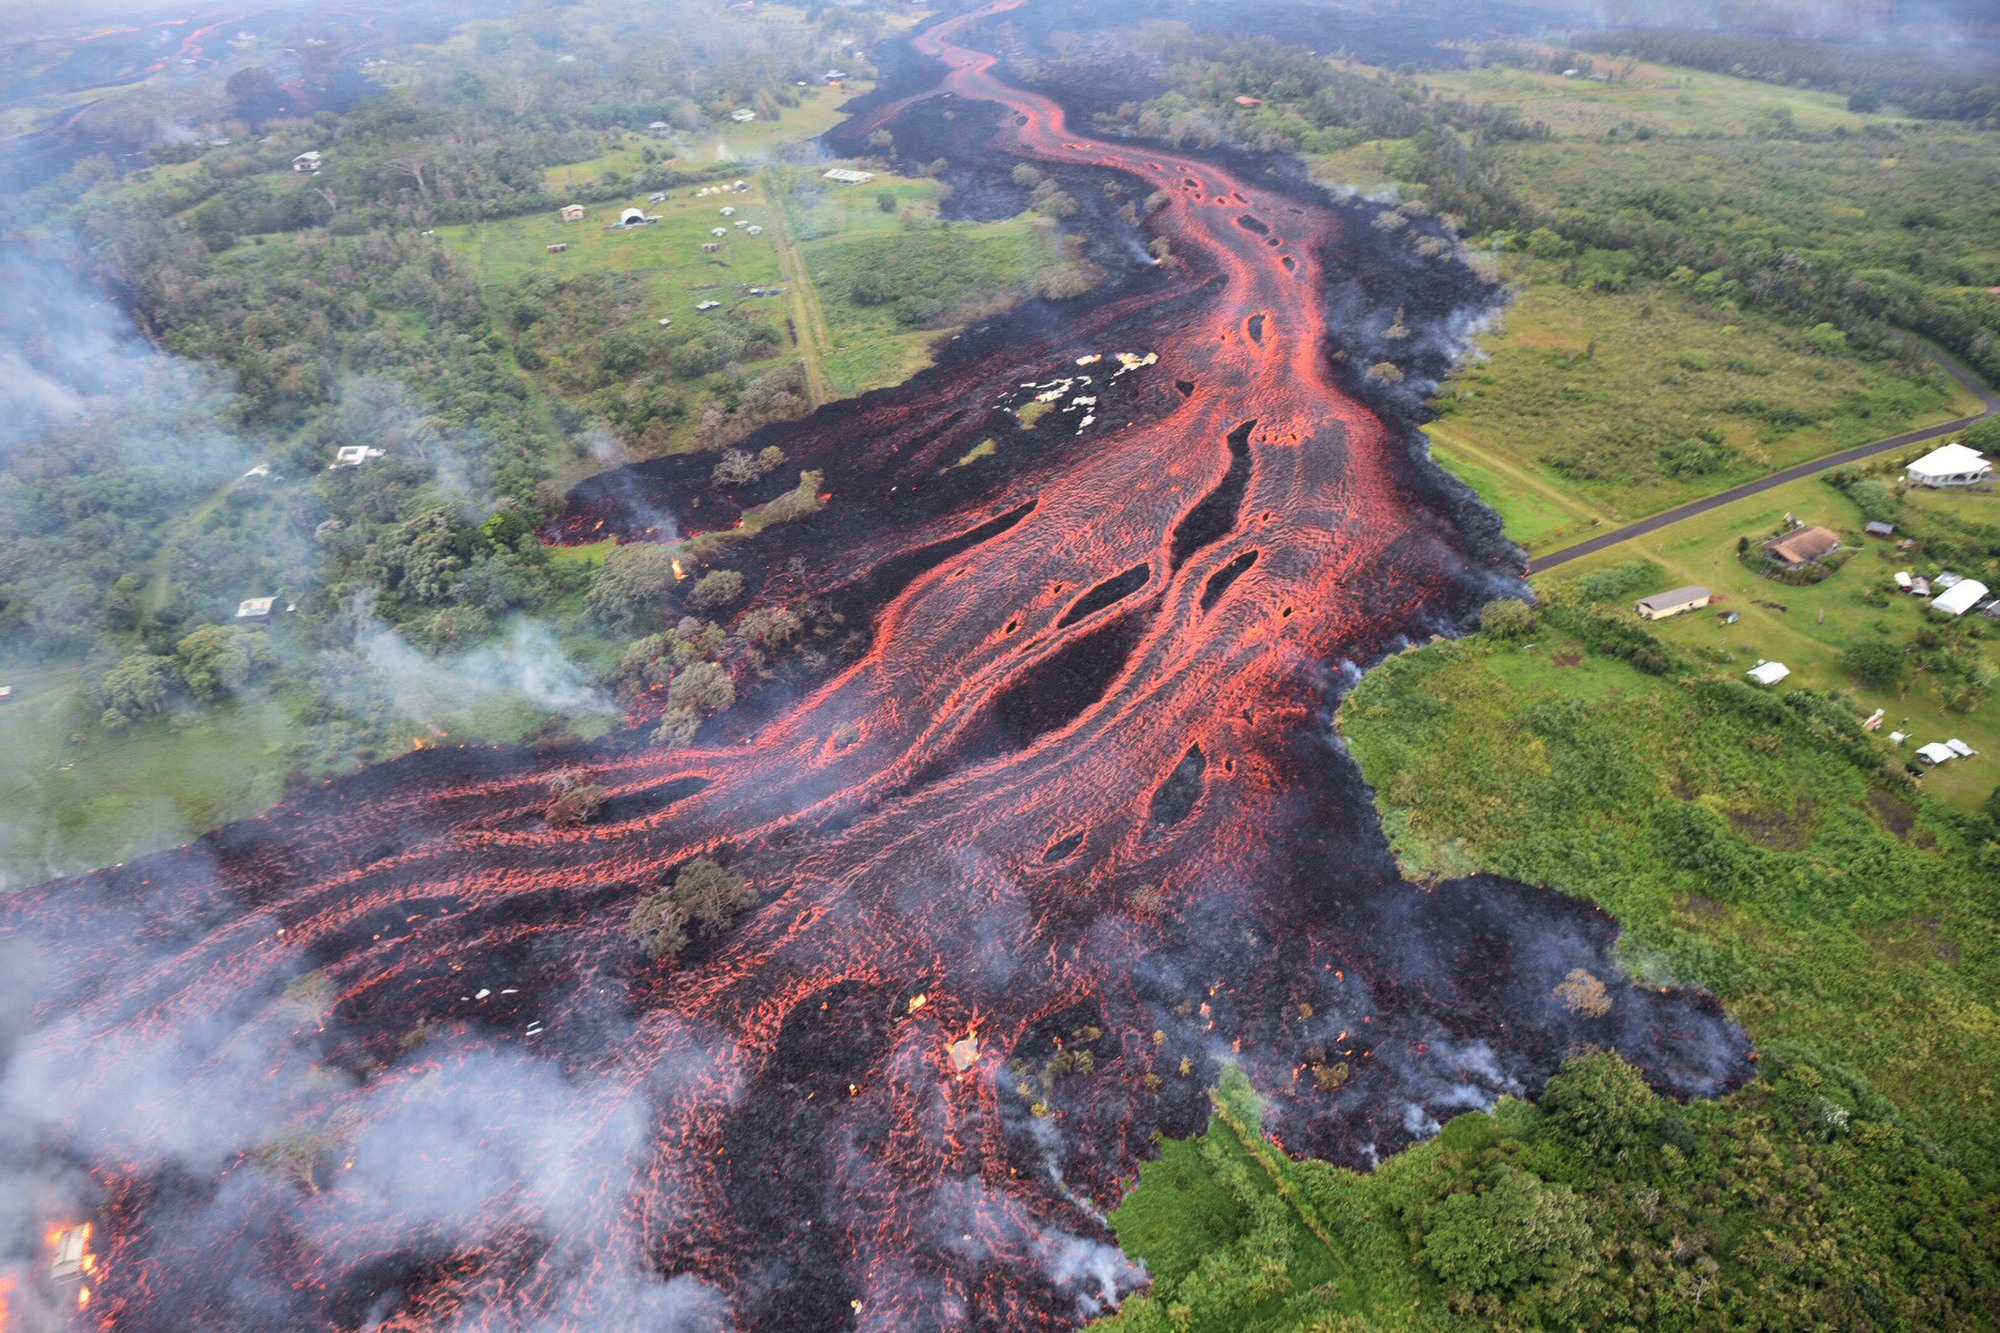 <p><strong>PATH OF DESTRUCTION:</strong> In mid-May, rivers of lava flowed near Pahoa, the gateway to Hawaii Volcanoes National Park. The park reopened in September. / U.S. Geological Survey</p>